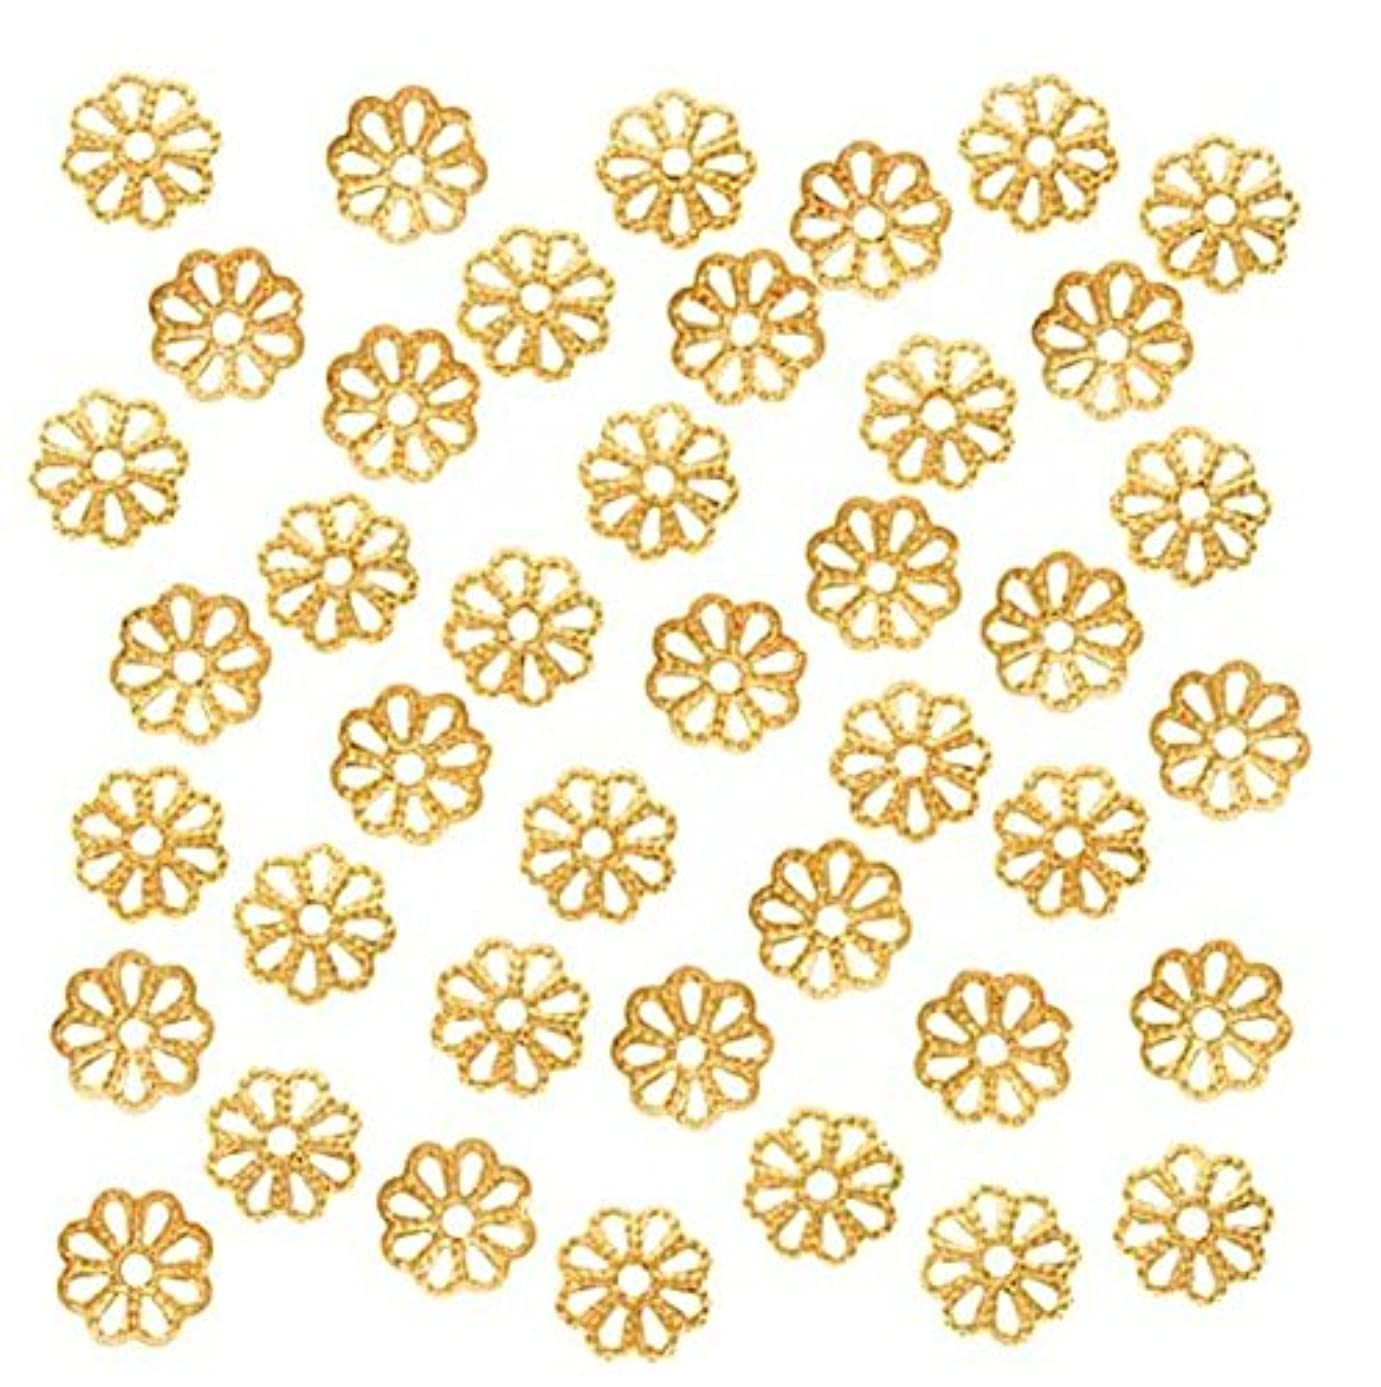 100pcs Top Quality Pretty Filigree Flower 10mm Bead Caps Gold Plated Brass for Jewelry Craft Making CF174-10